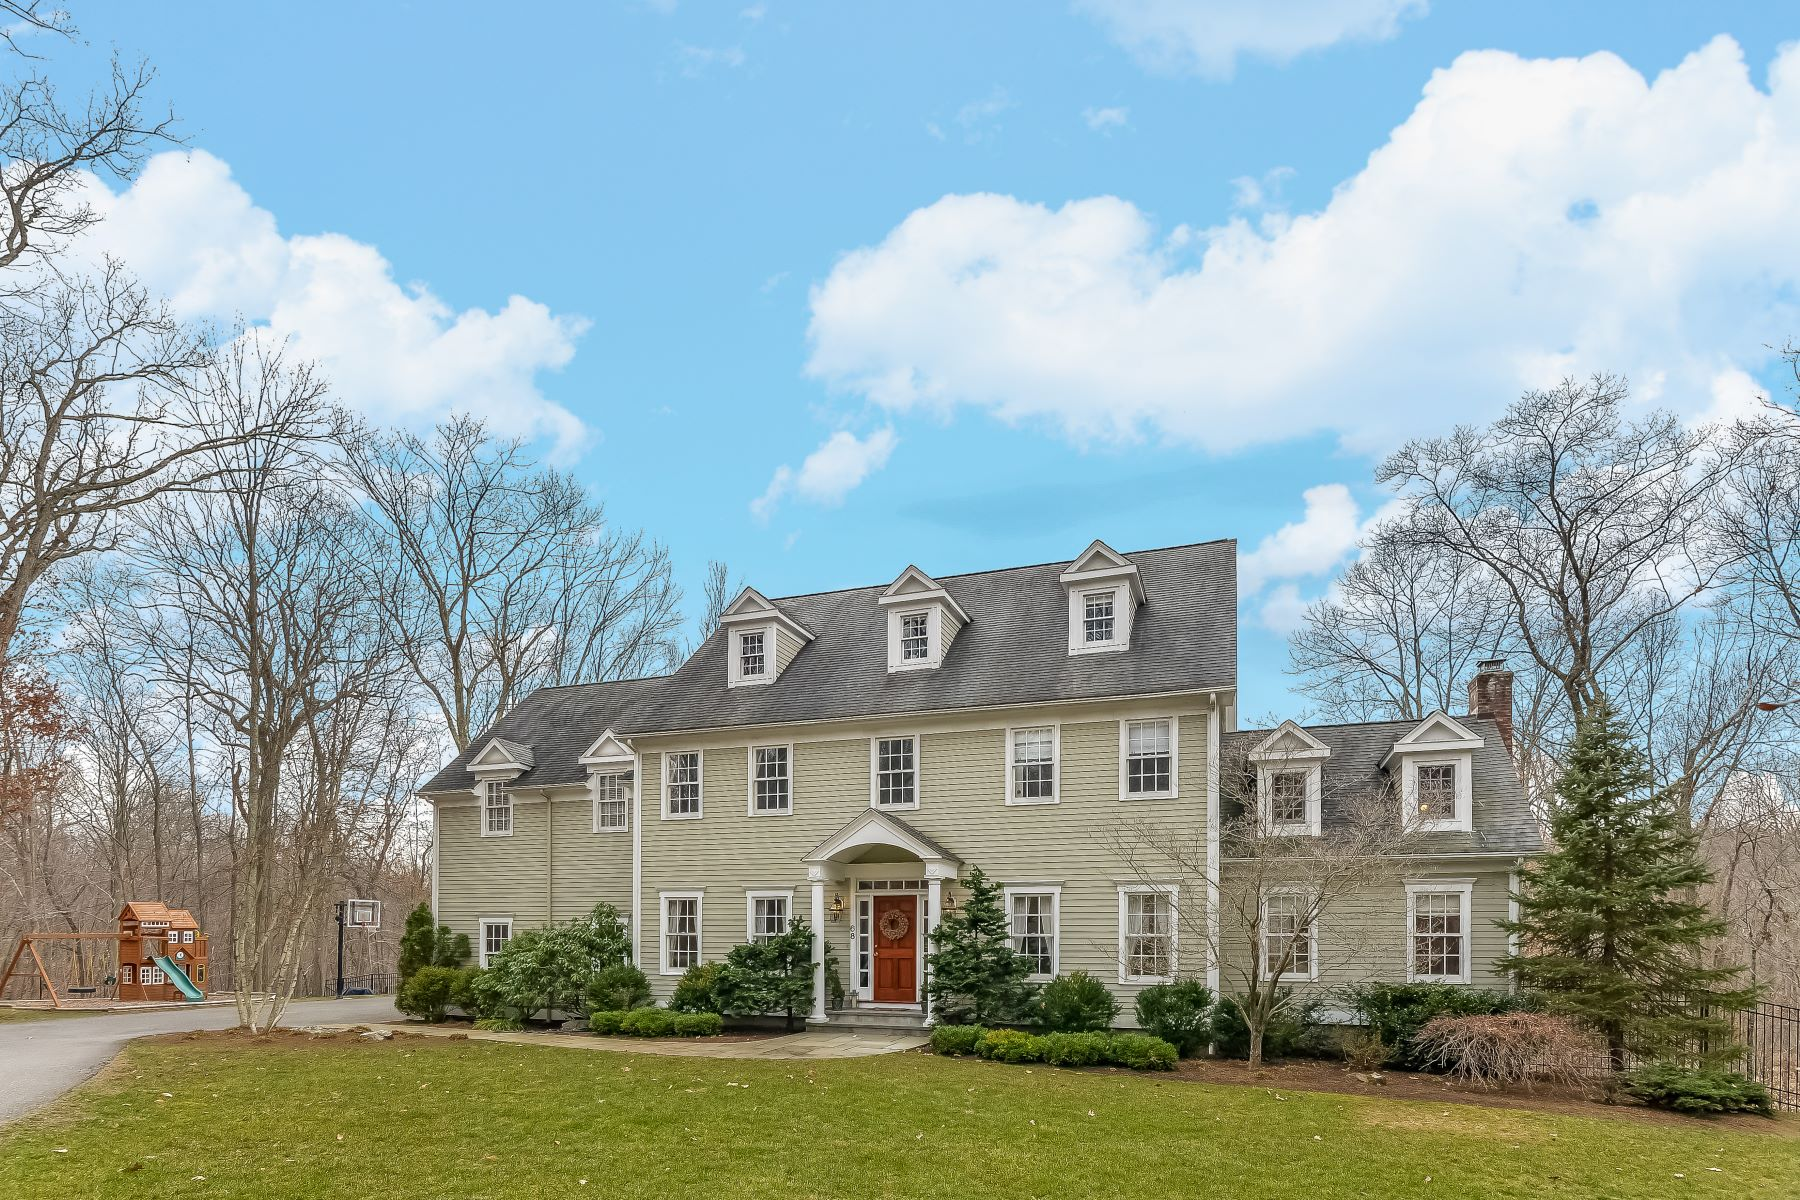 Casa Unifamiliar por un Venta en Spacious Colonial Set Privately 68 Topstone Road Ridgefield, Connecticut, 06877 Estados Unidos